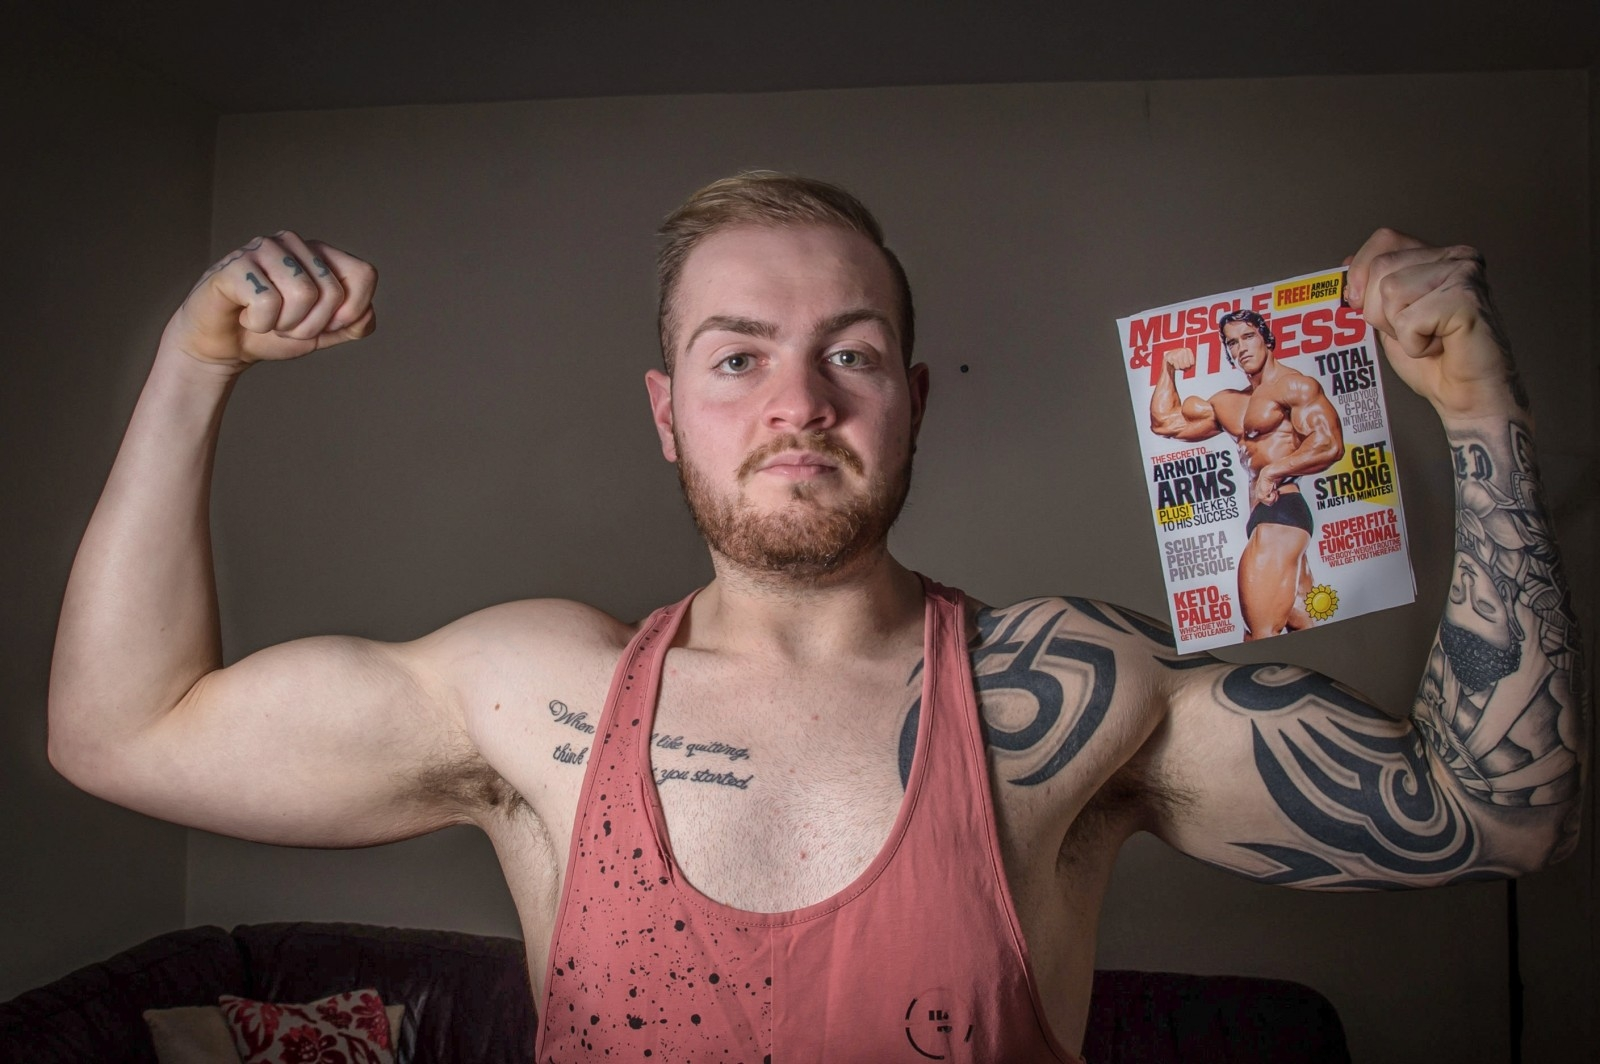 Man Who Tipped The Scales At 20st Transforms Into Bodybuilder After Being Inspired By Arnold Schwarzenegger Movies